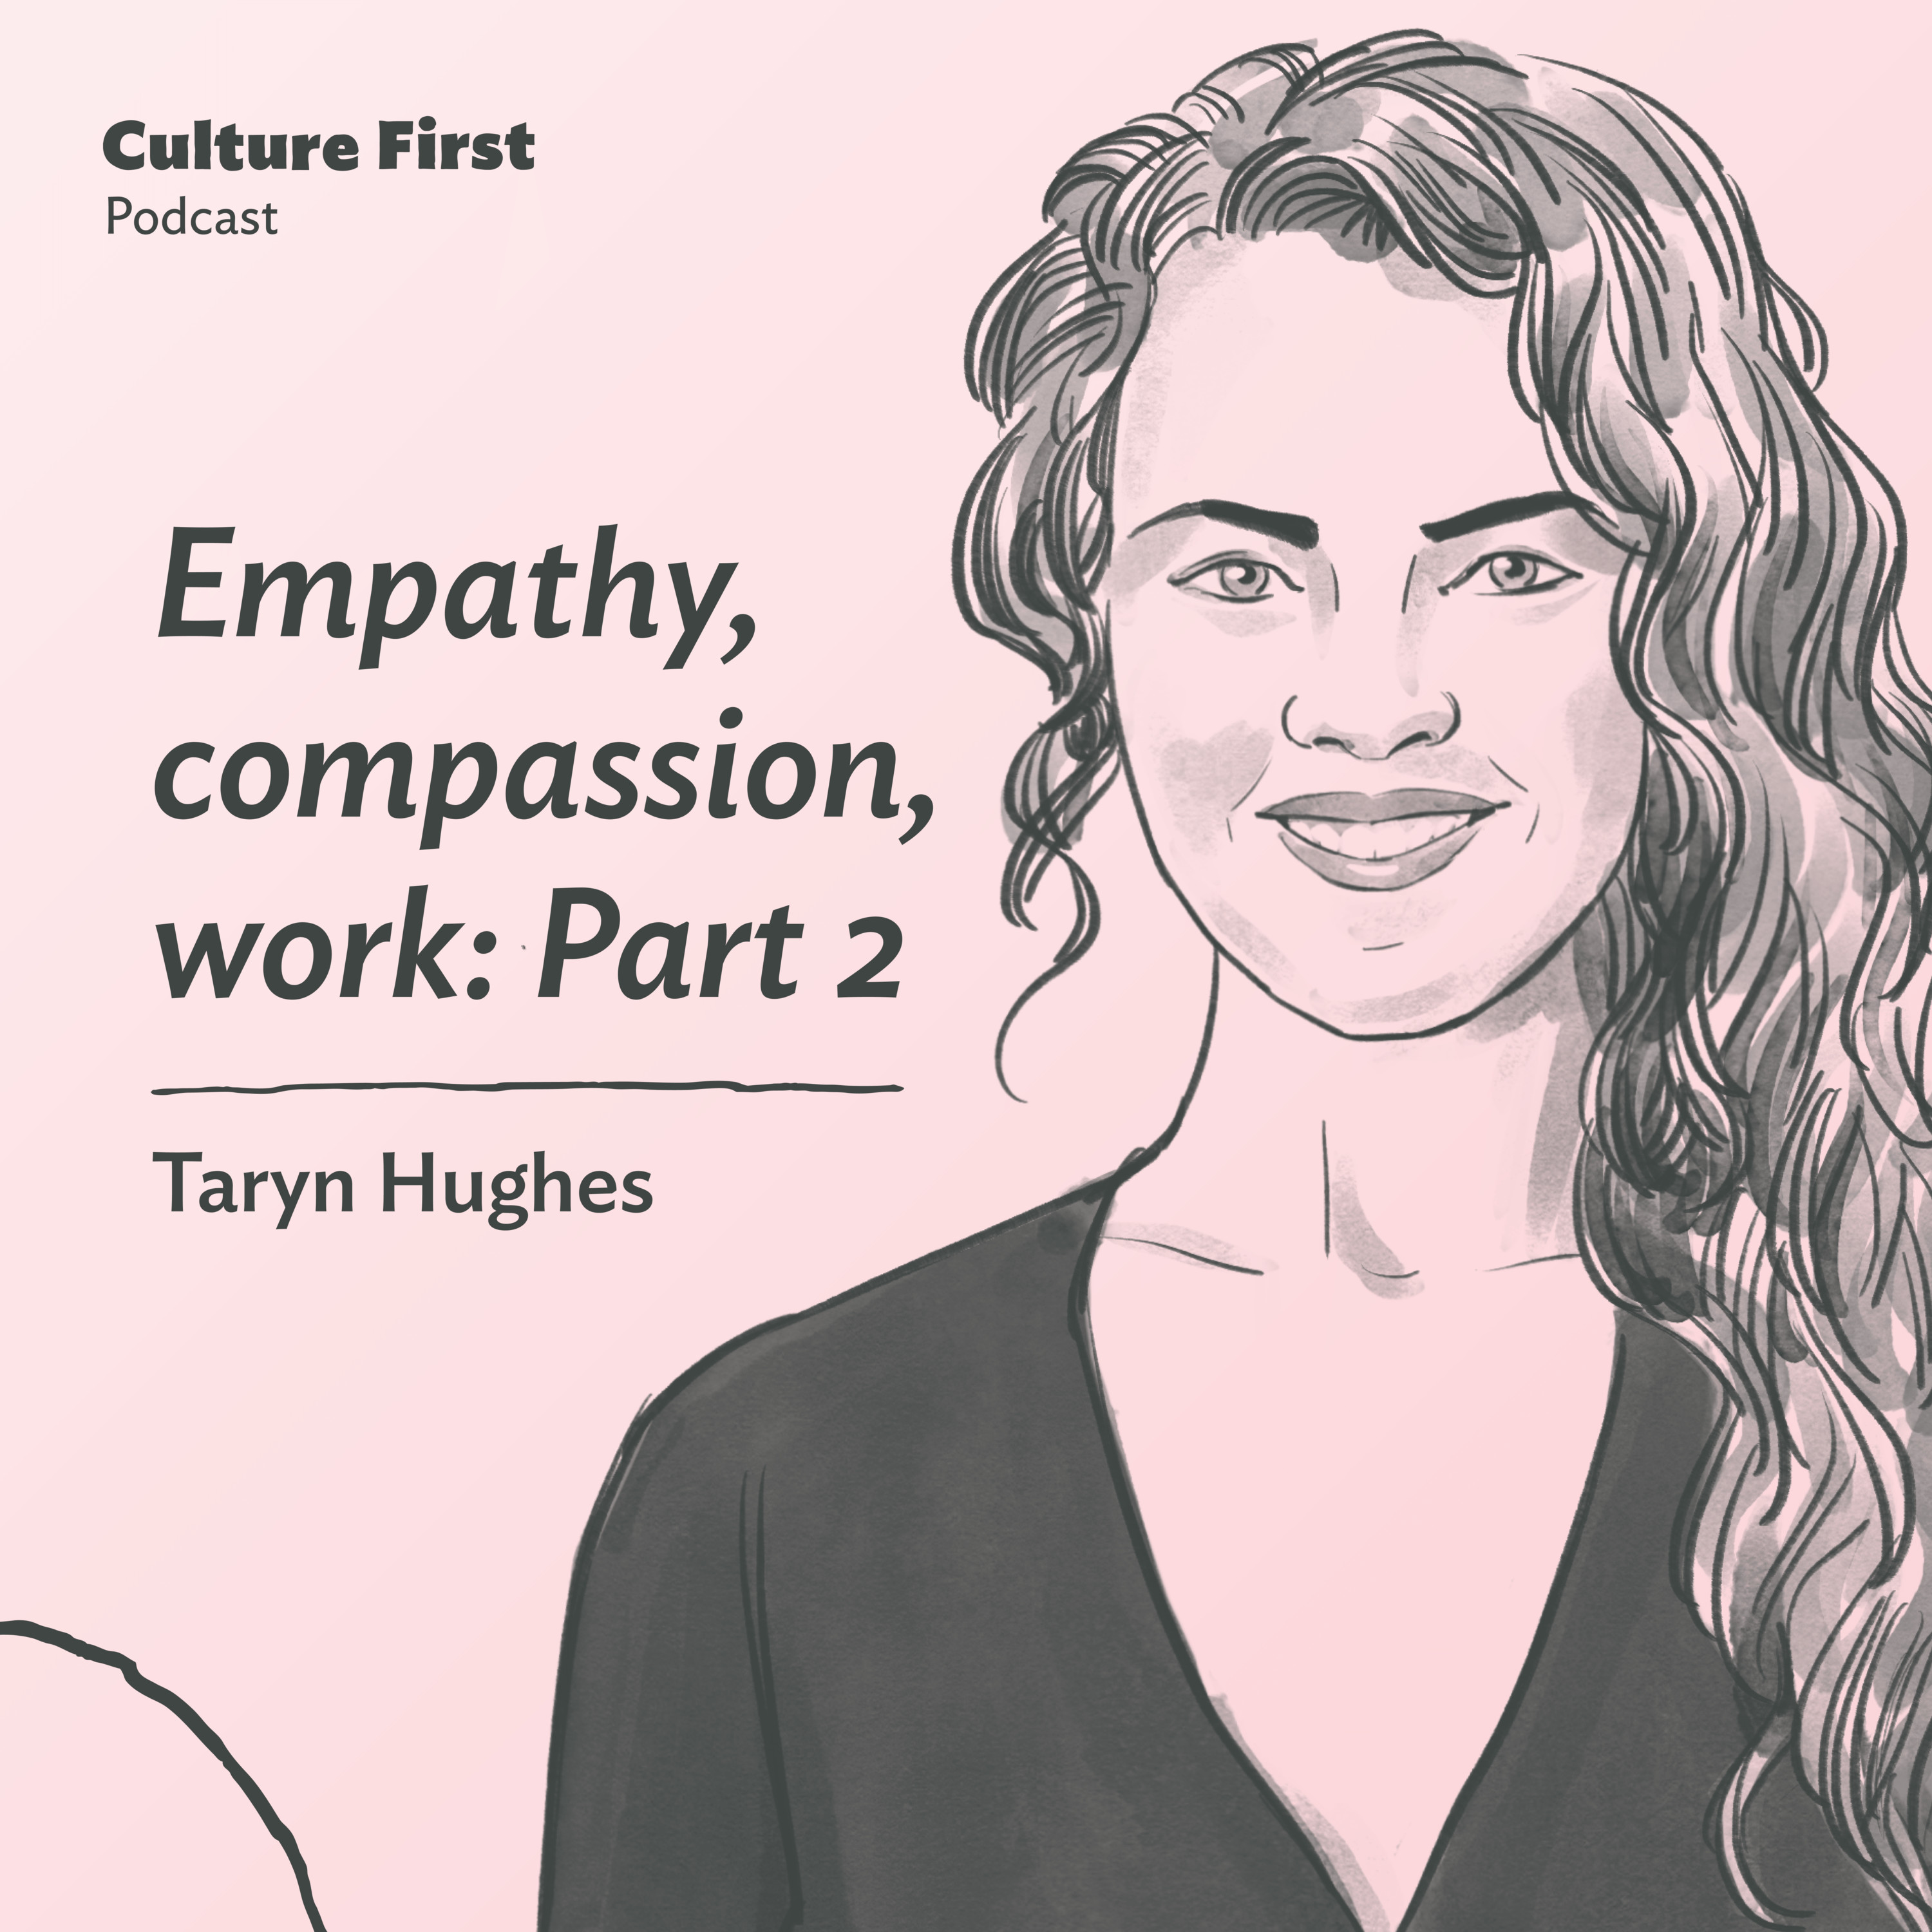 Empathy, compassion, work: Part 2, with Taryn Hughes